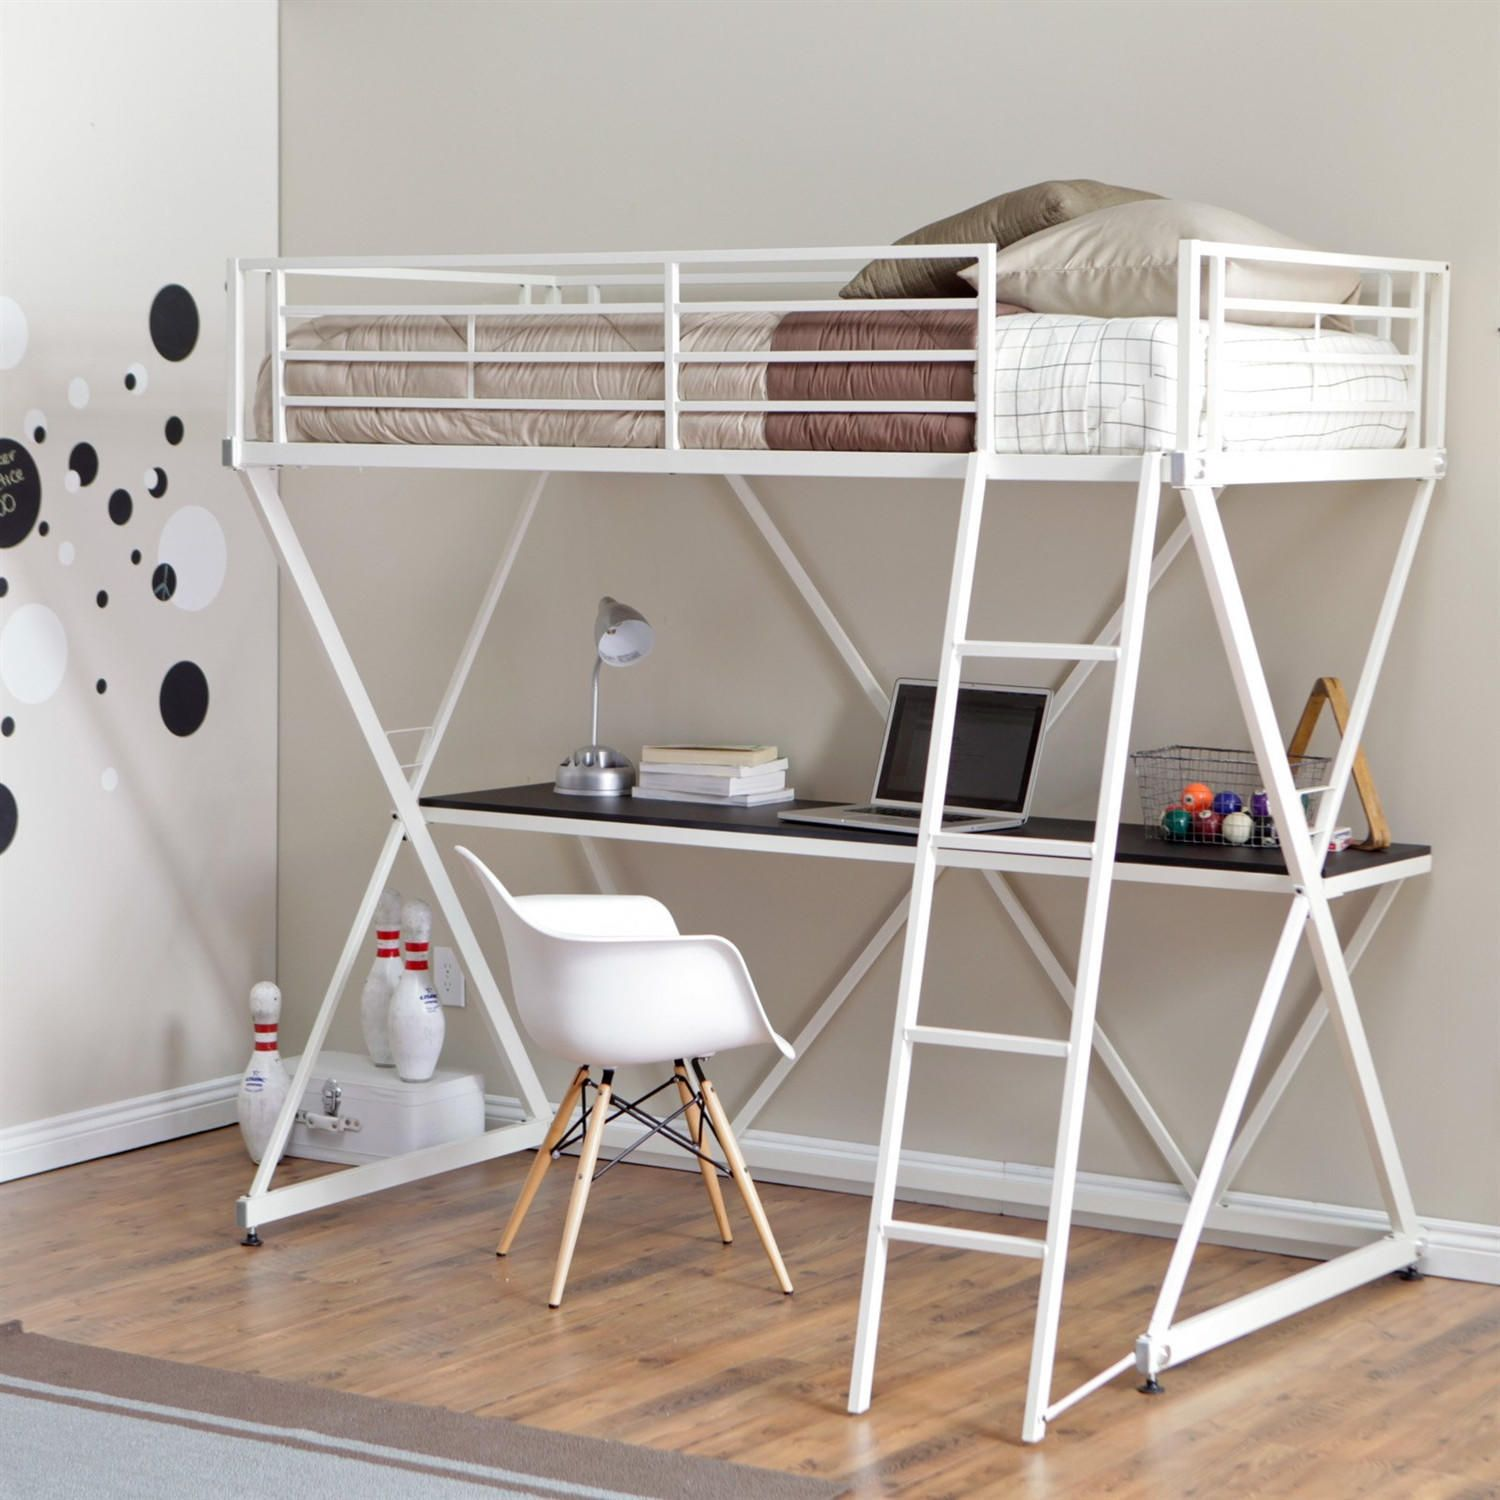 Z Beds For Adults Full Size Metal Loft Bed With Desk And Staircase Loft Bed